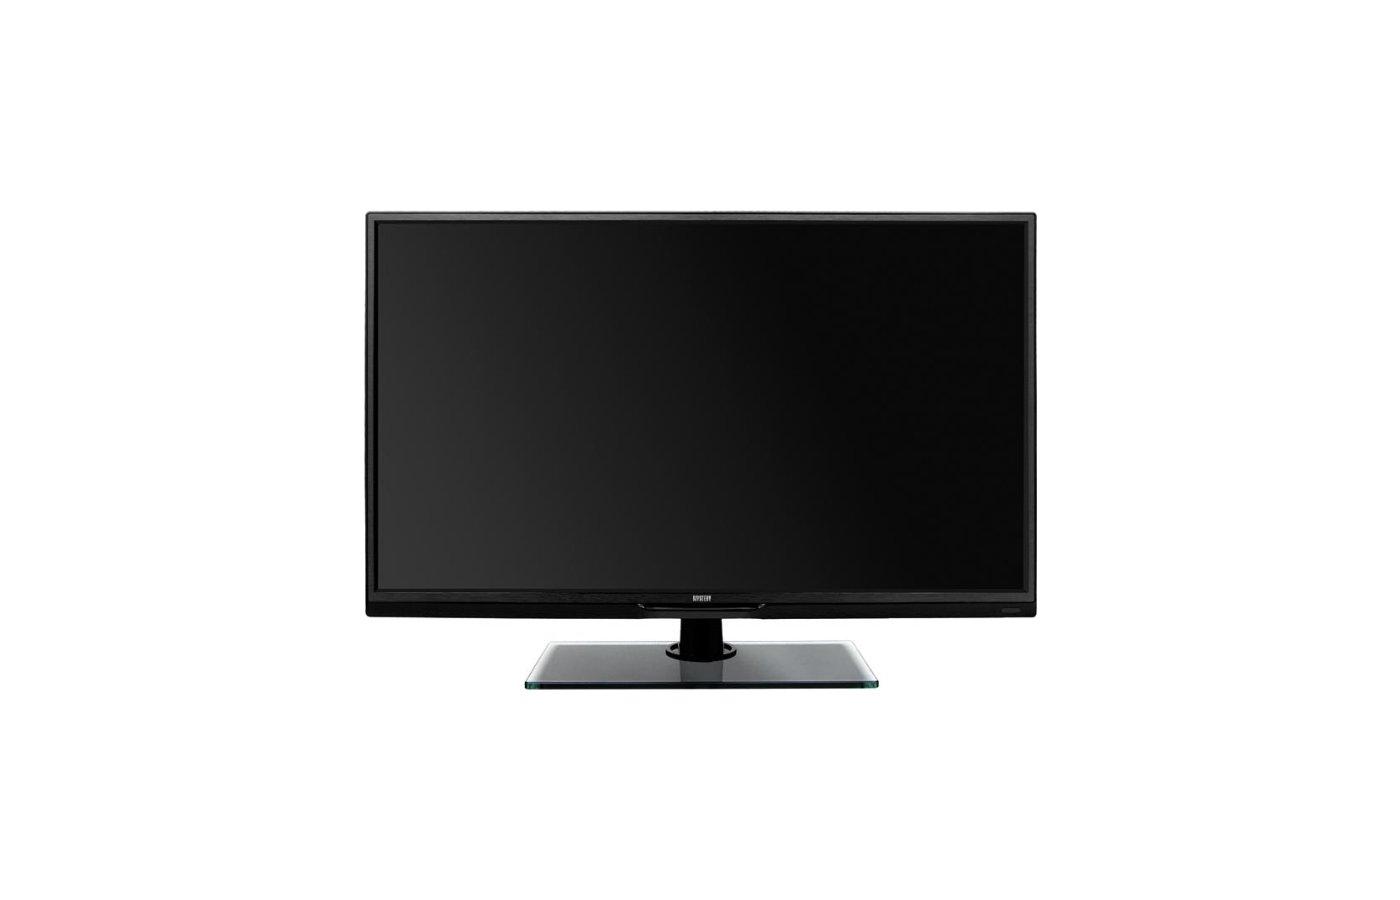 LED телевизор MYSTERY MTV-3027LT2 black